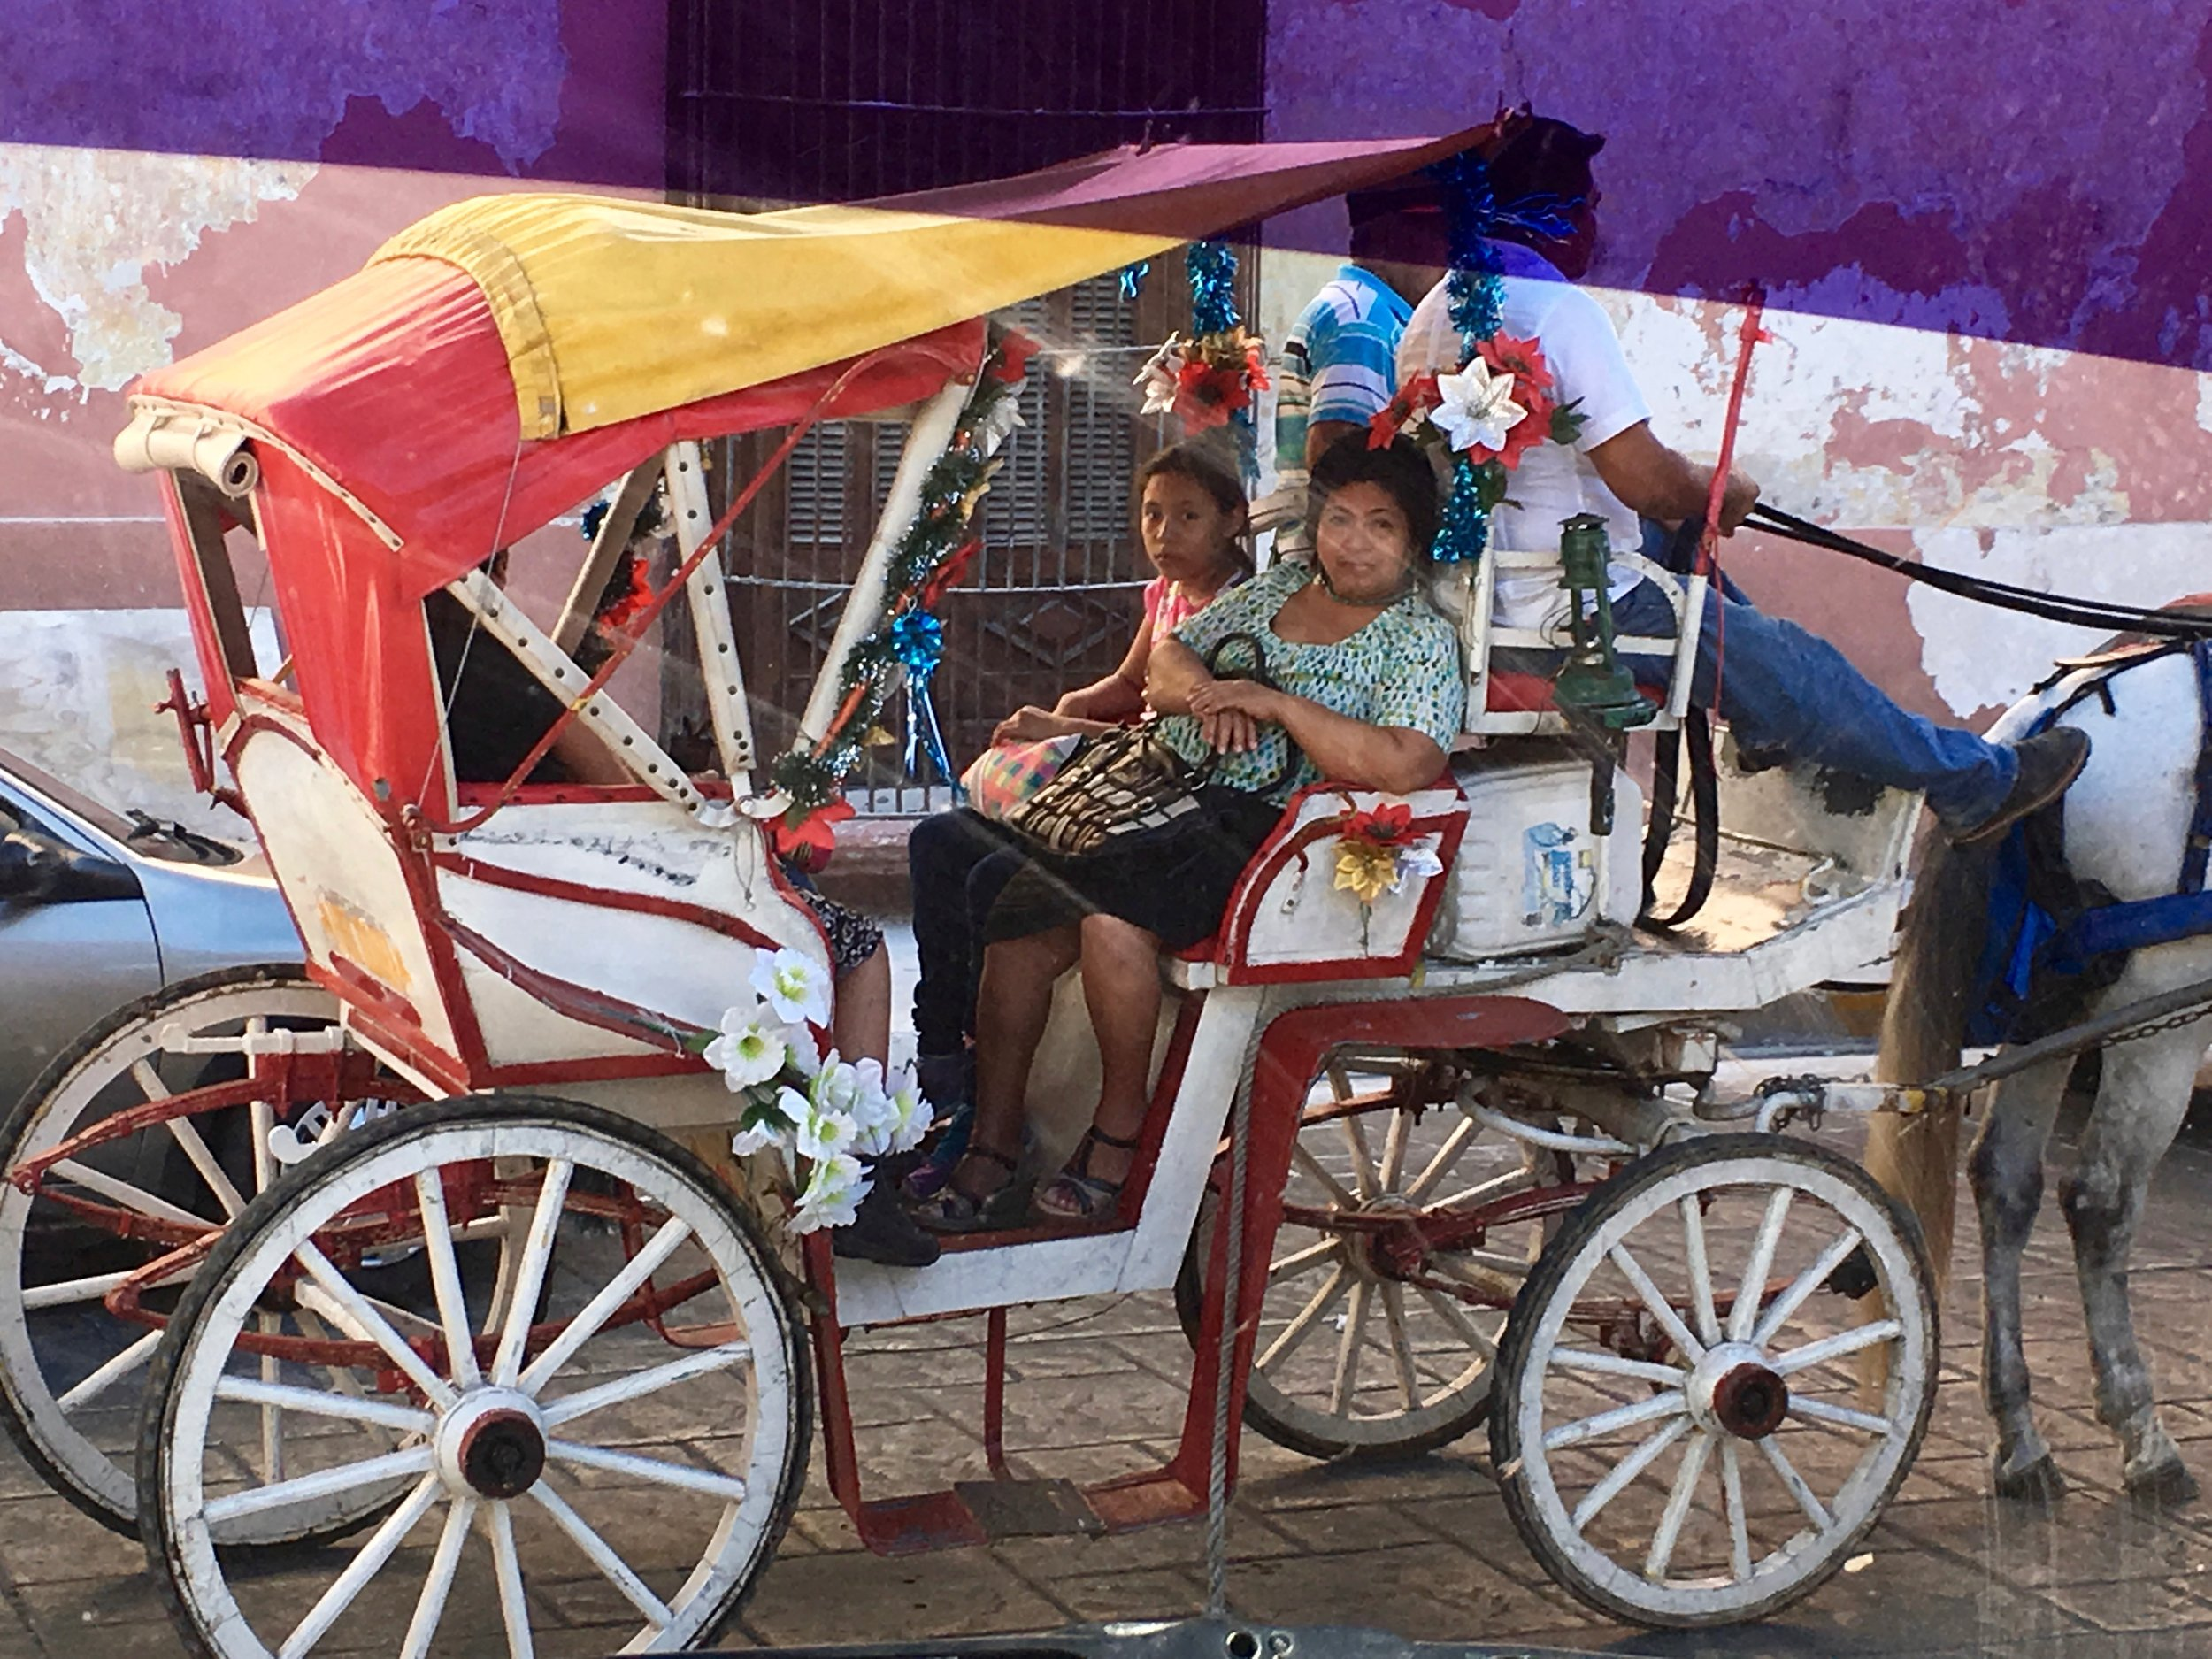 Andrea Emmerich, horse carriage in Tulum, Yucatan, Mexico - 3 Days*